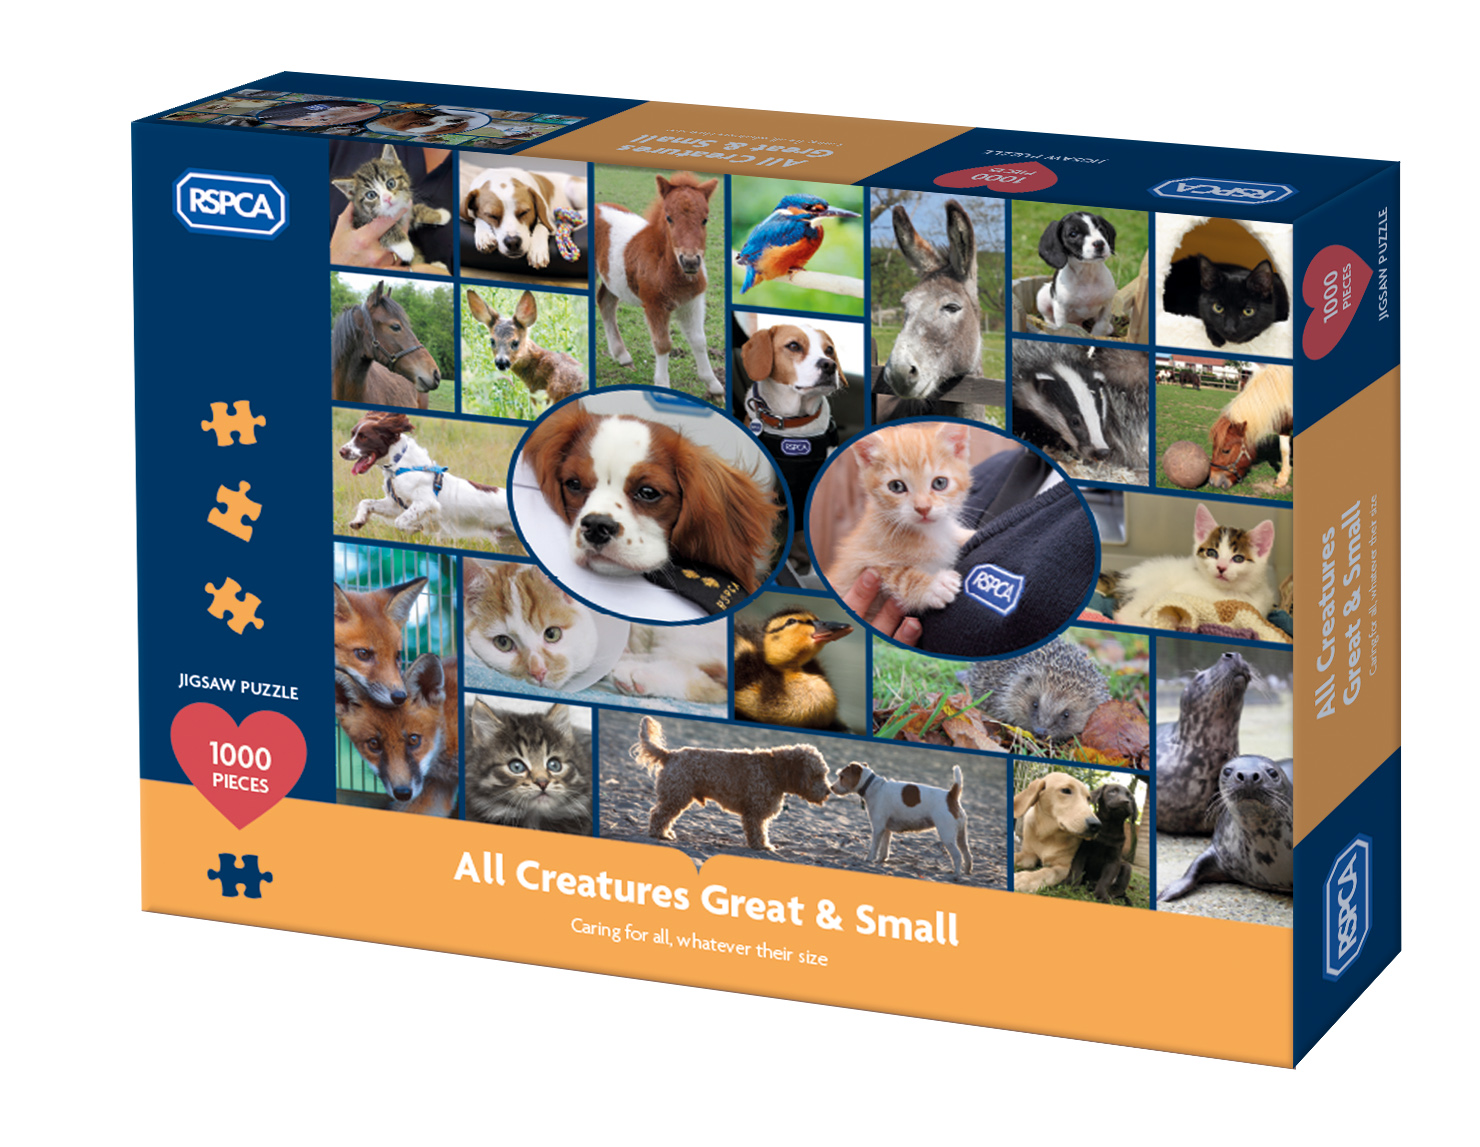 RSPCA All Creatures Great & Small puzzle